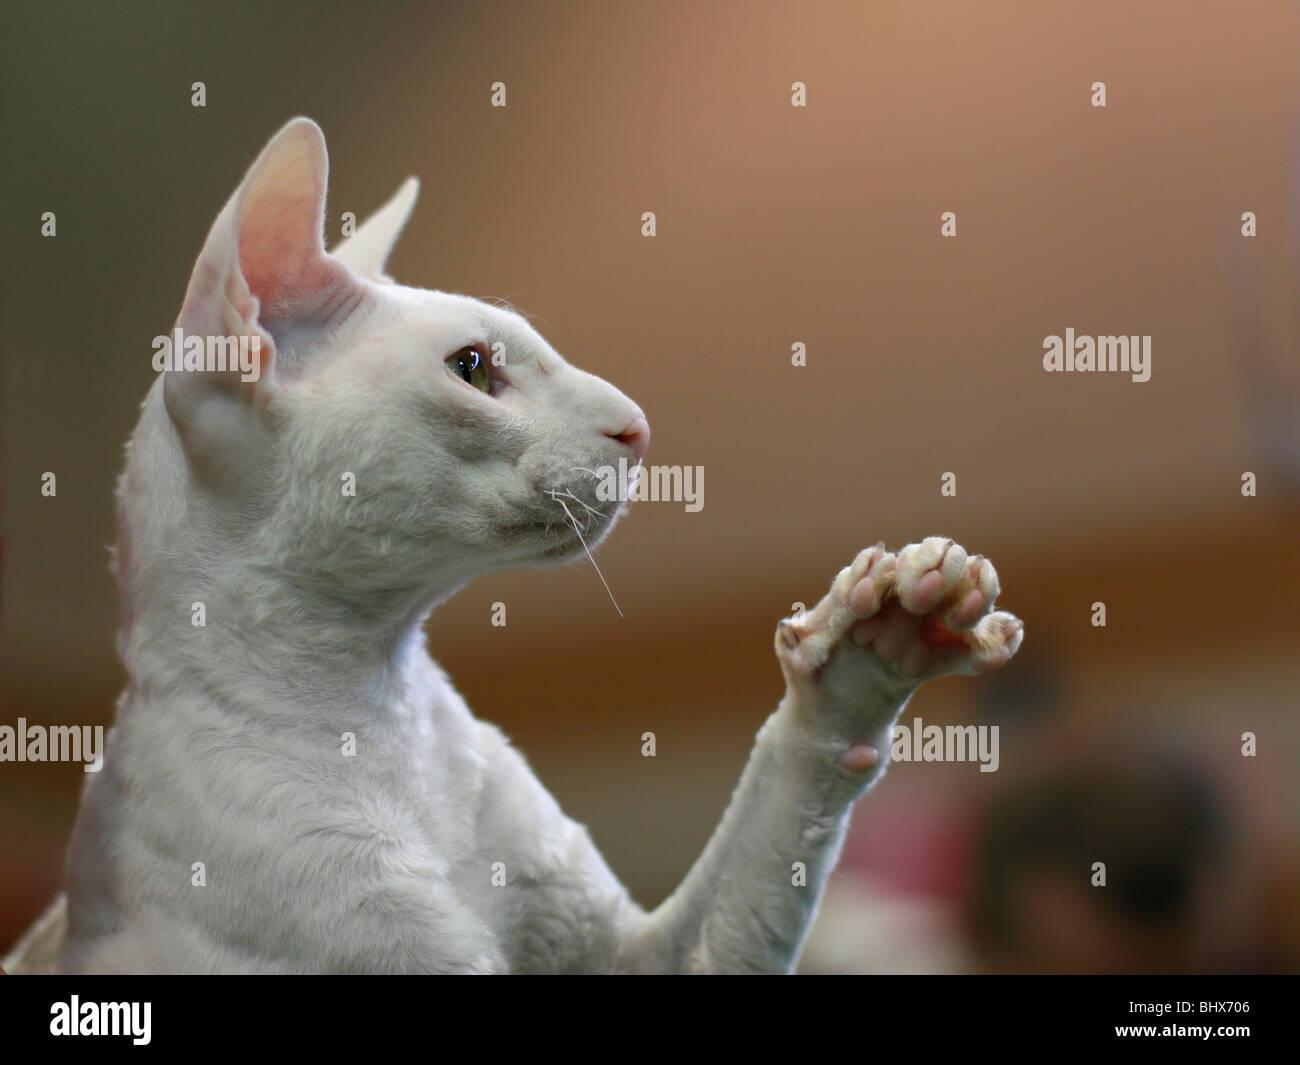 Pedigree hairless Cat - white Cornish Rex. The Cornish Rex has no hair except for down. Stock Photo